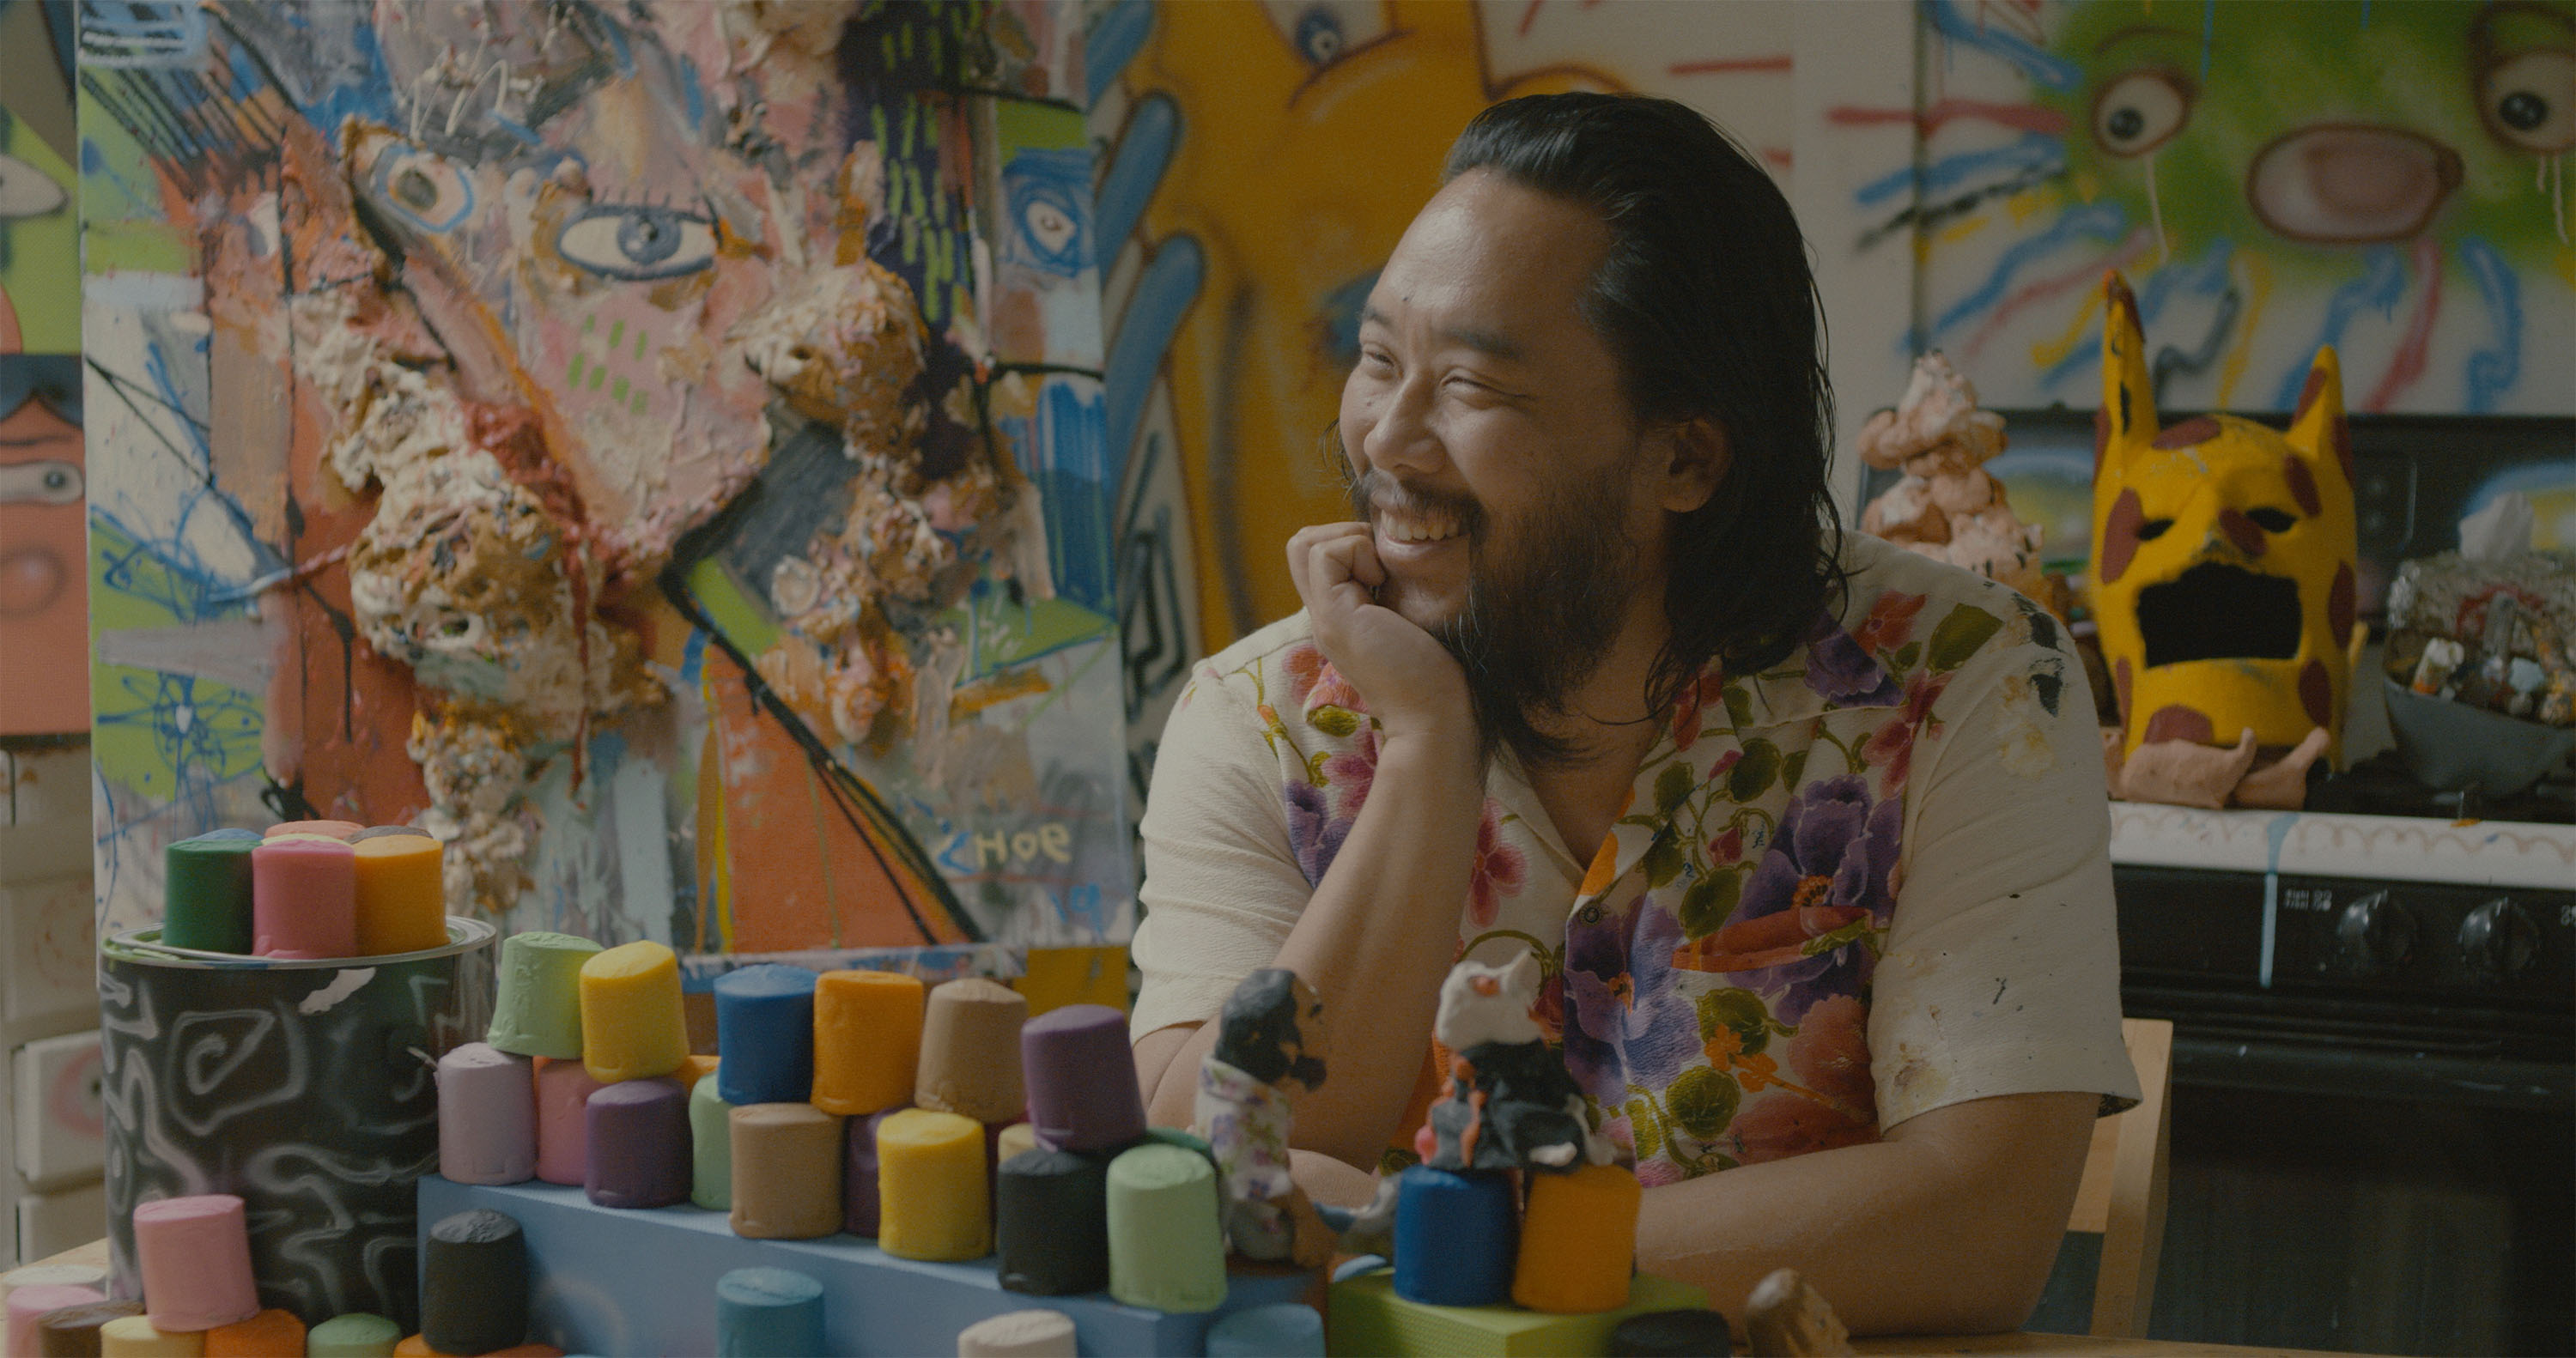 Artist David Choe To Host Interview Show On FX With Hiro Murai To EP –  Deadline